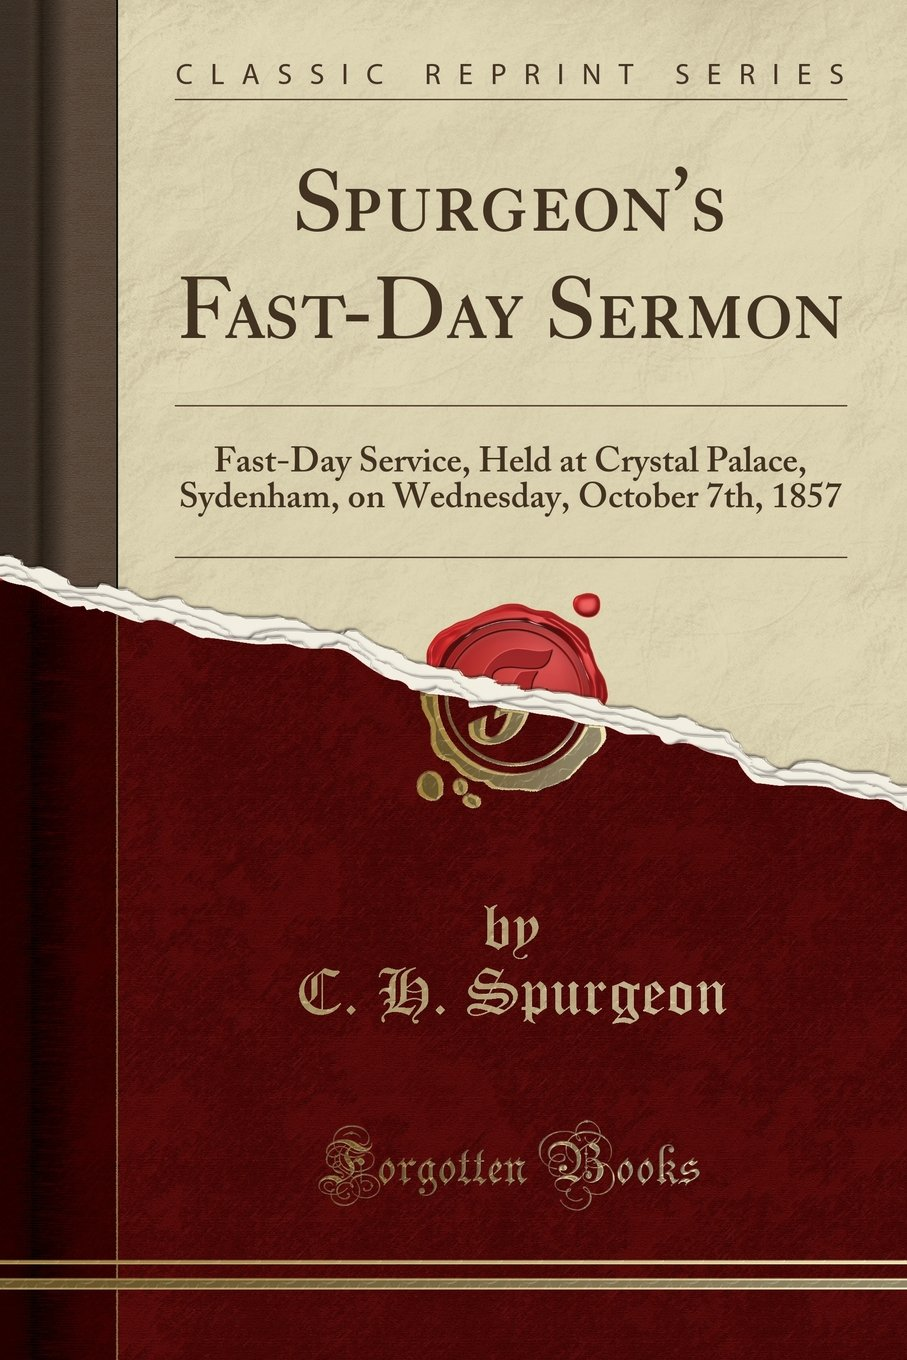 Spurgeon's Fast-Day Sermon: Fast-Day Service, Held at Crystal Palace, Sydenham, on Wednesday, October 7th, 1857 (Classic Reprint) PDF